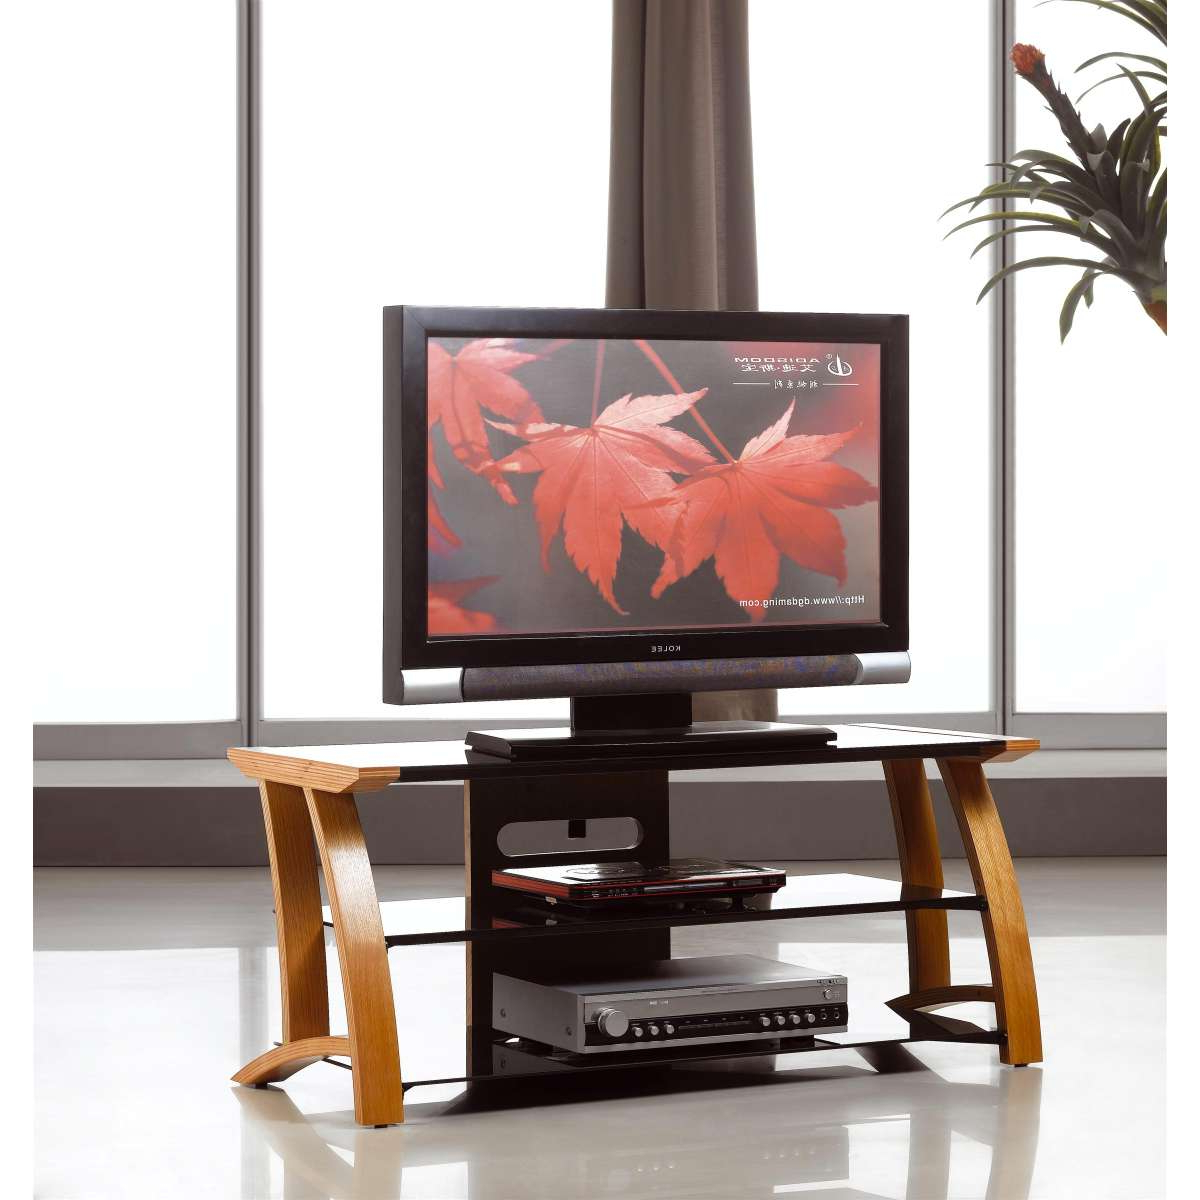 Oak Tv Stand Black Glass Shelves + Flat Screen 32 42 | Ebay With Regard To Glass Shelf With Tv Stands (View 8 of 20)